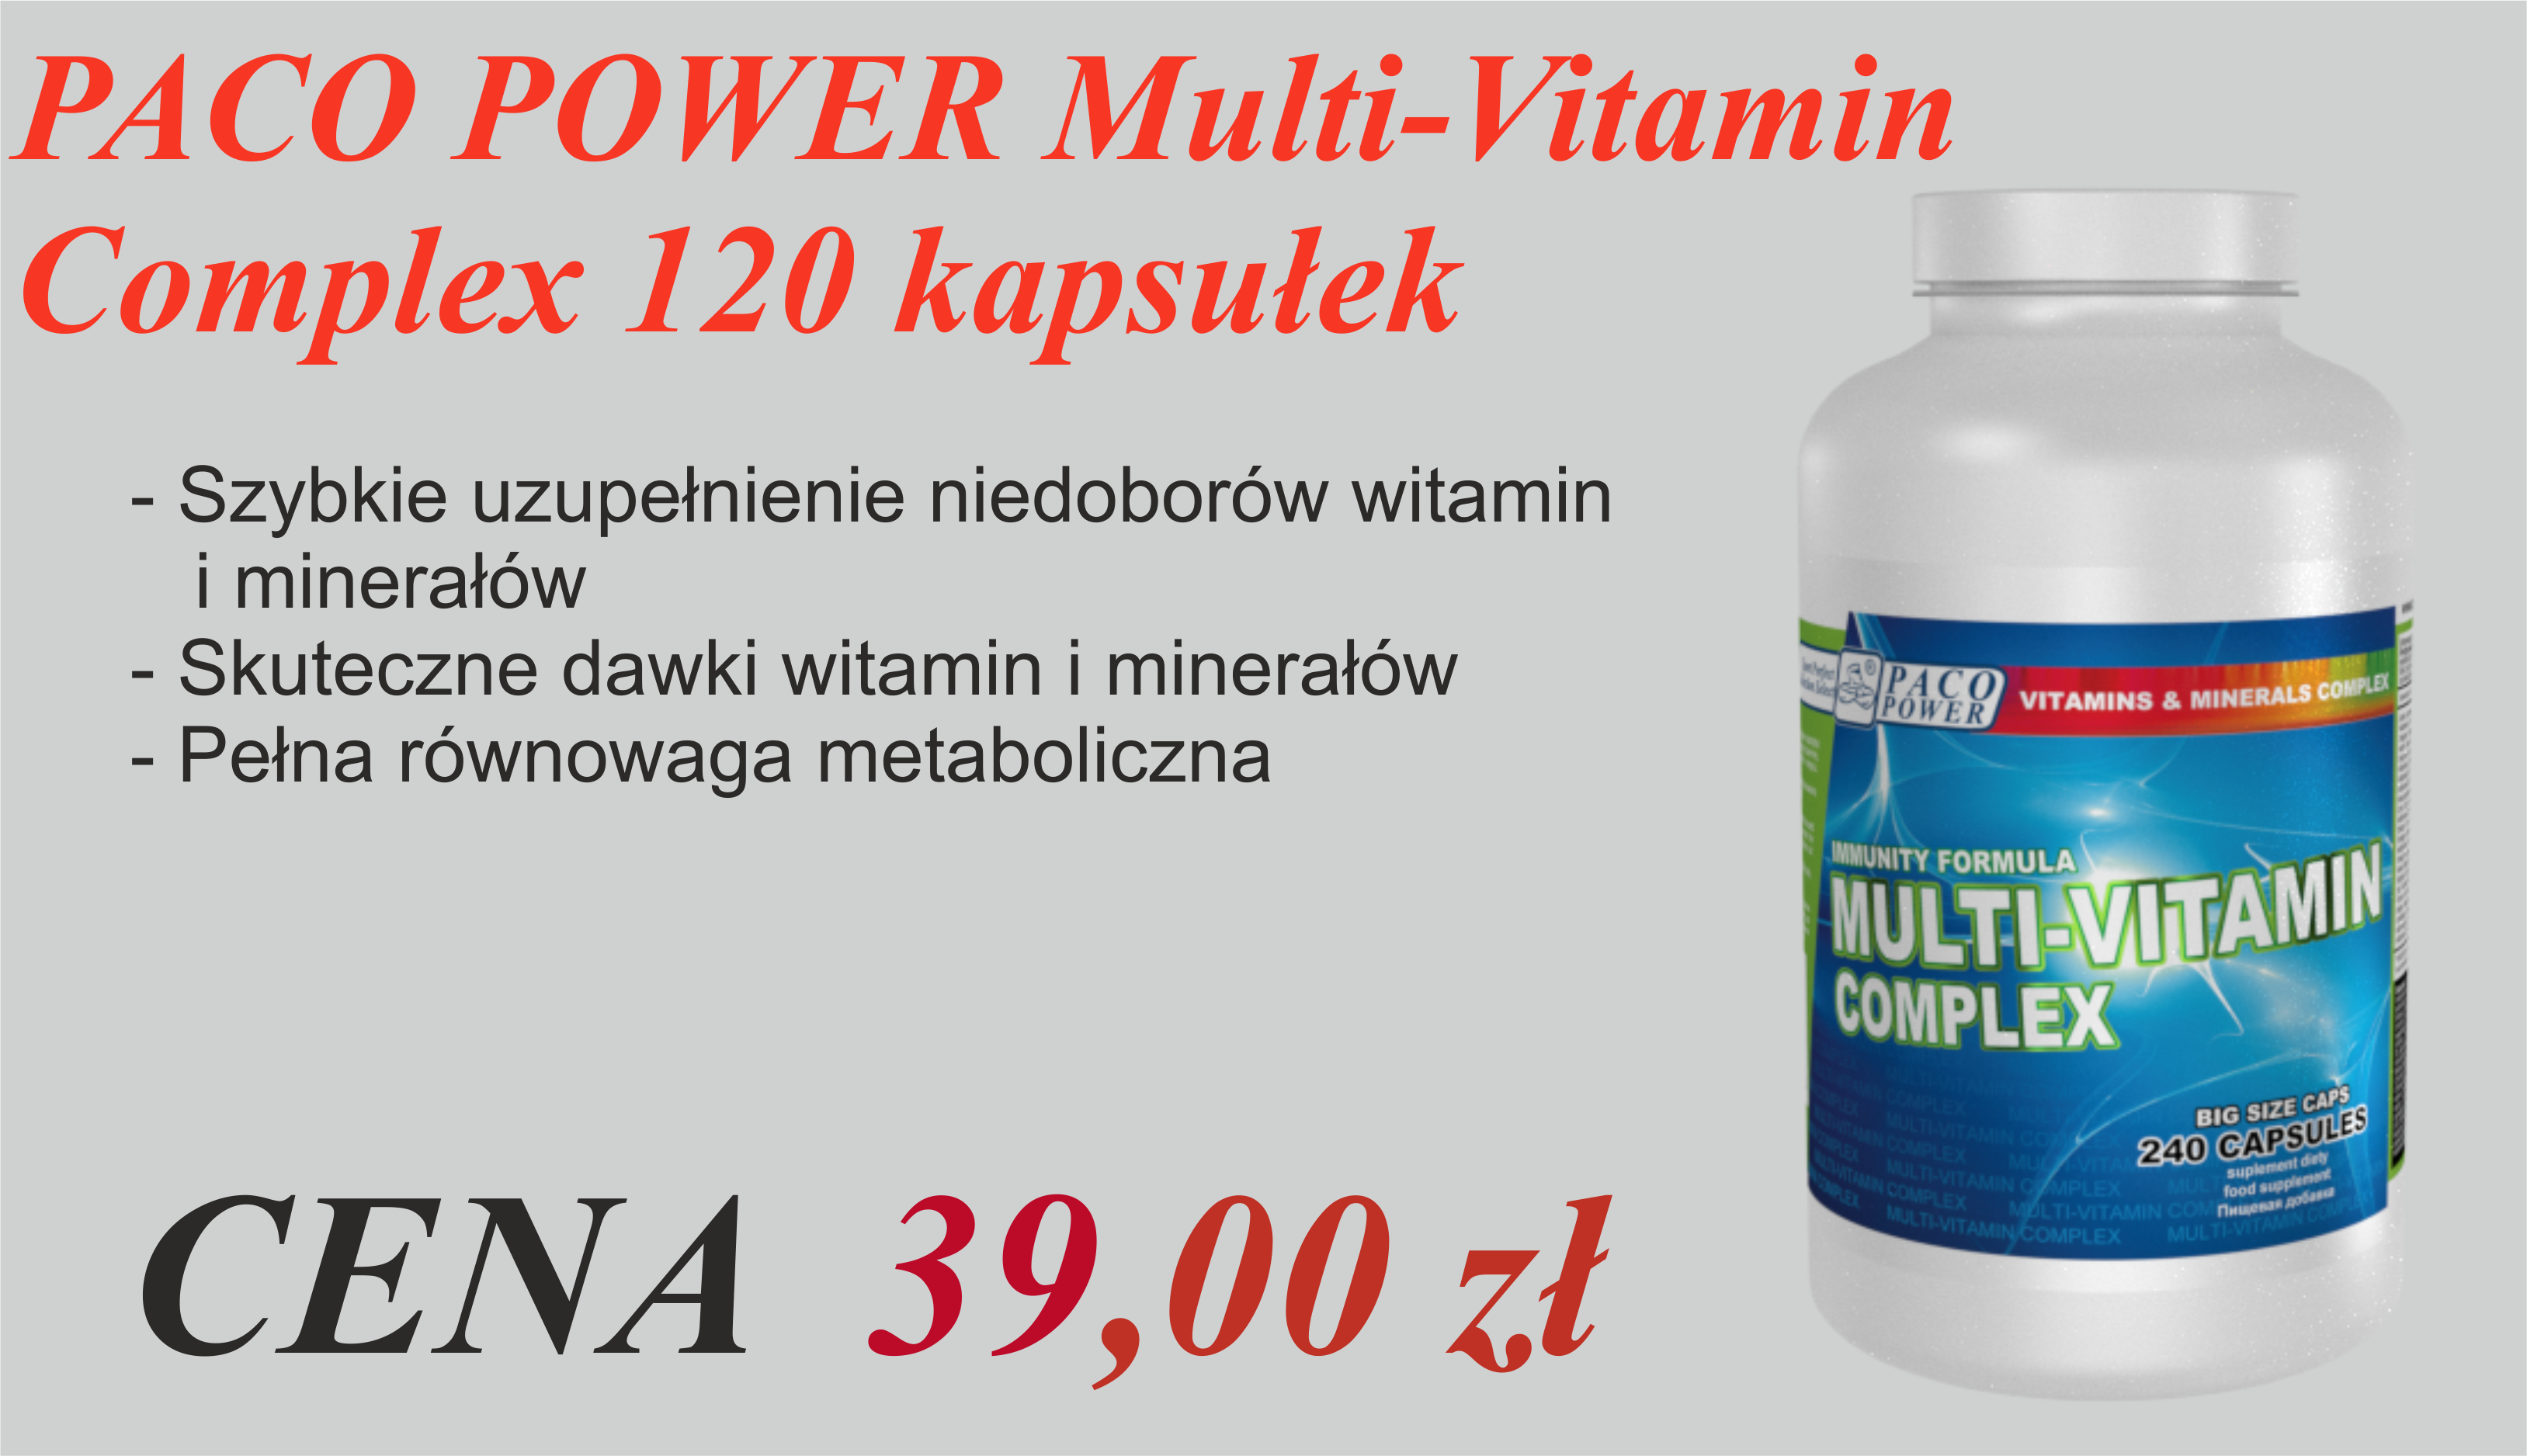 PACO POWER Multi-Vitamin